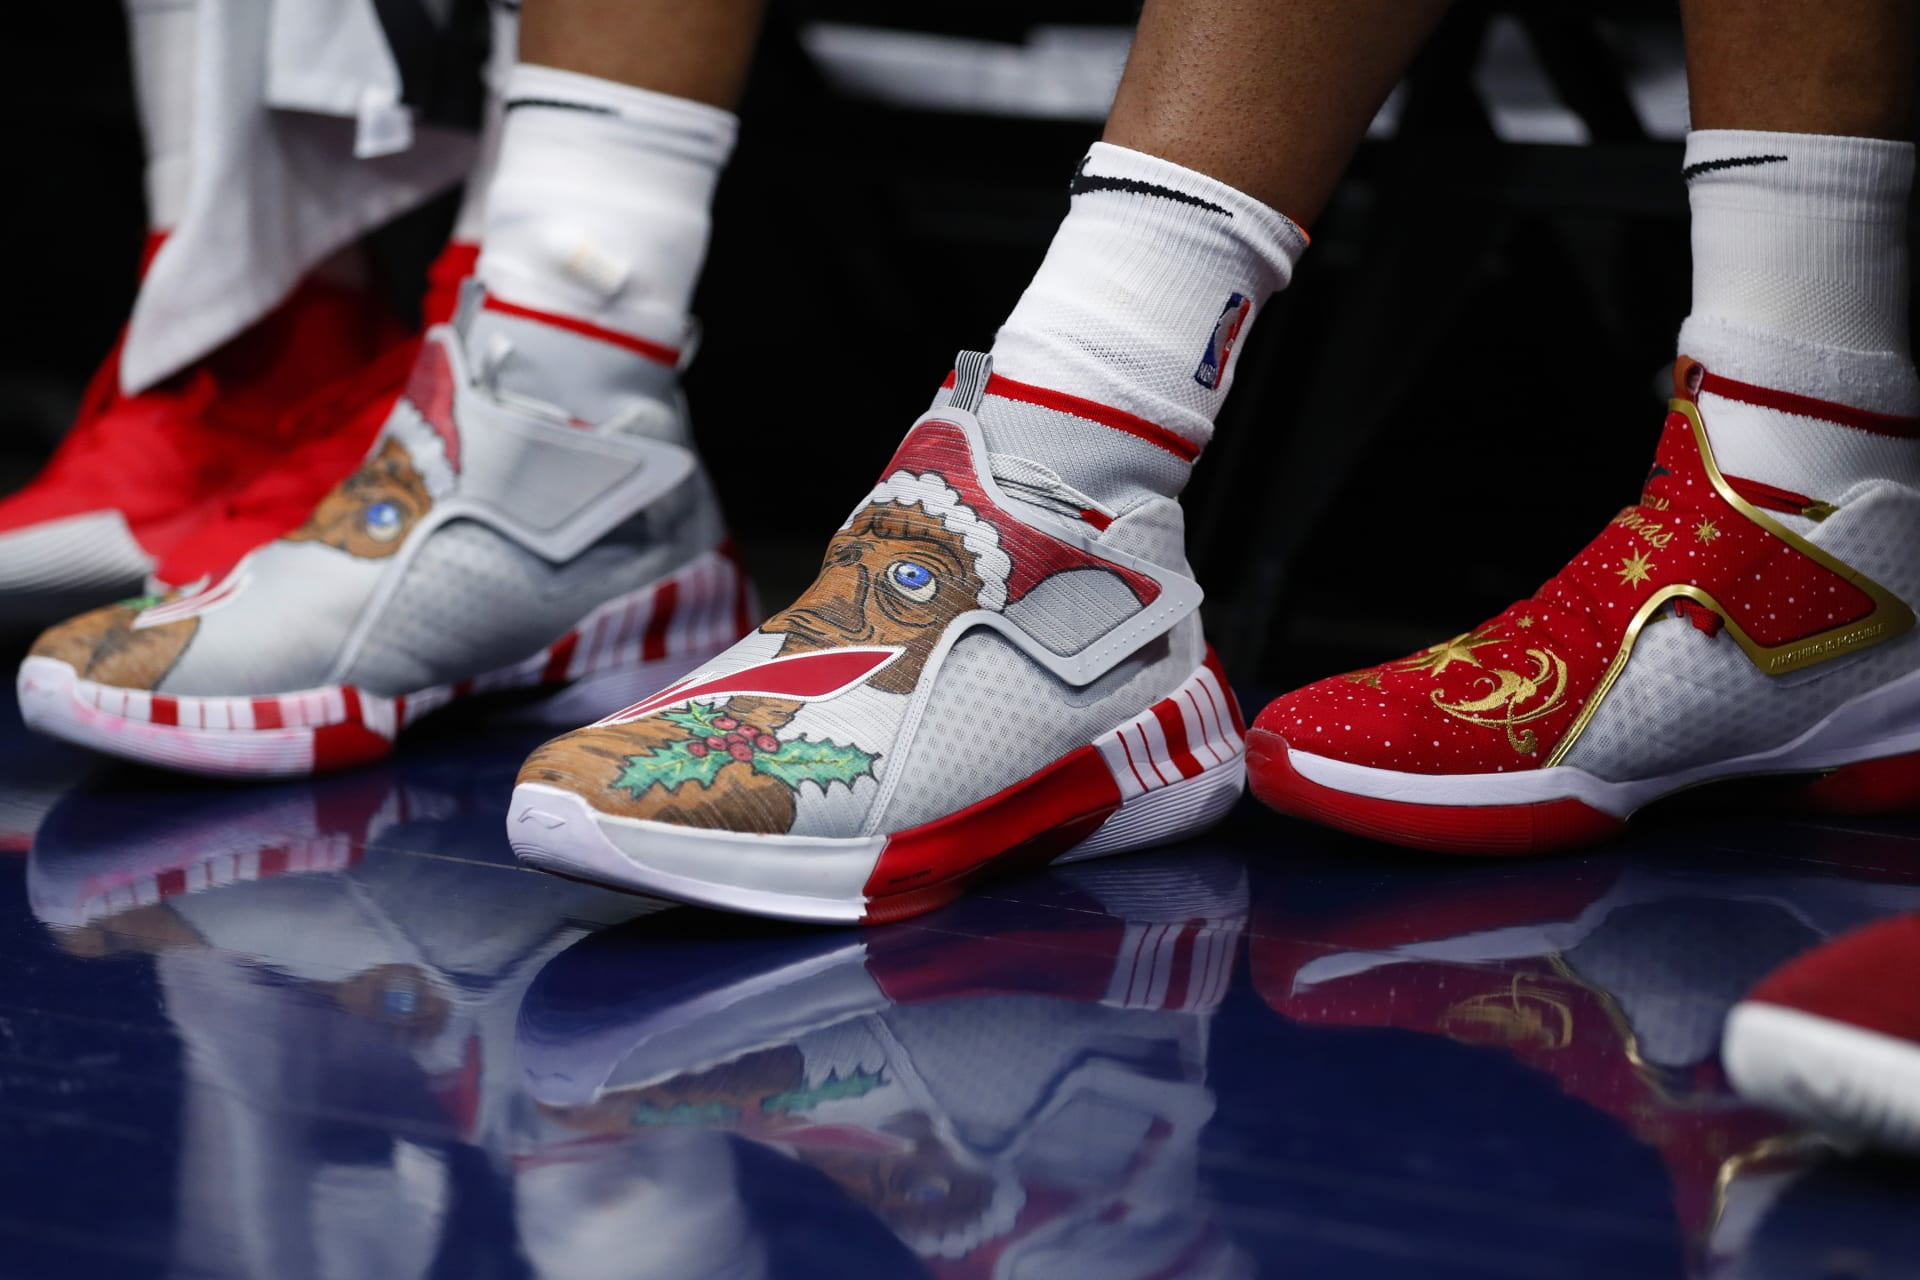 8f3a8af1c NBA Christmas Shoes  Best Sneakers Worn on Christmas Day 2018